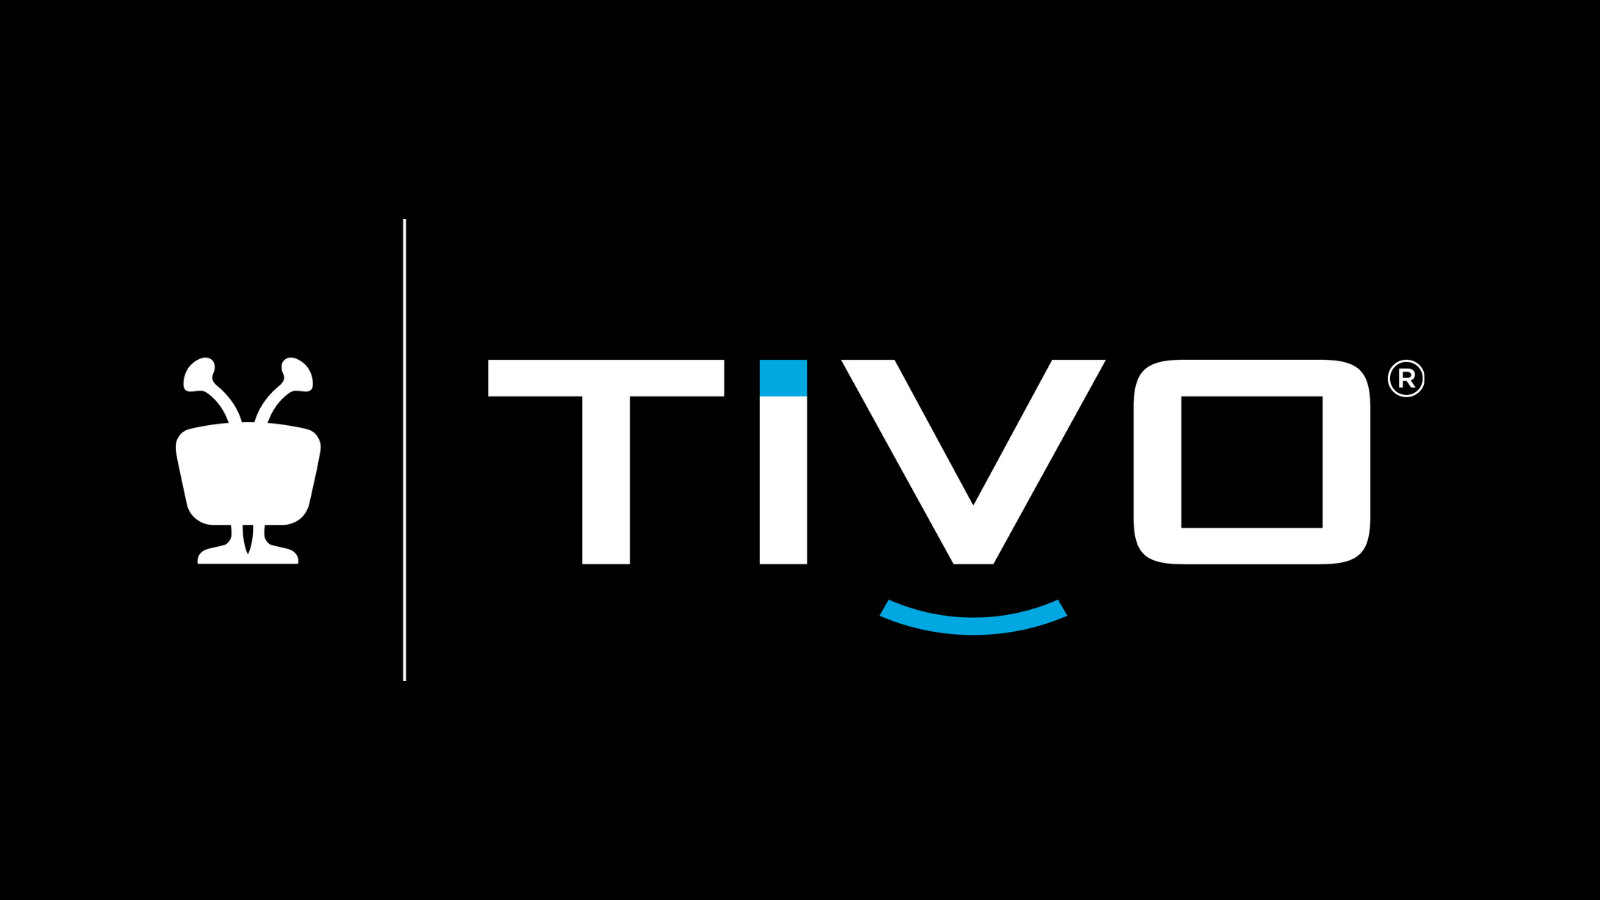 TiVo is About to Get Automatic Commercial Skipping